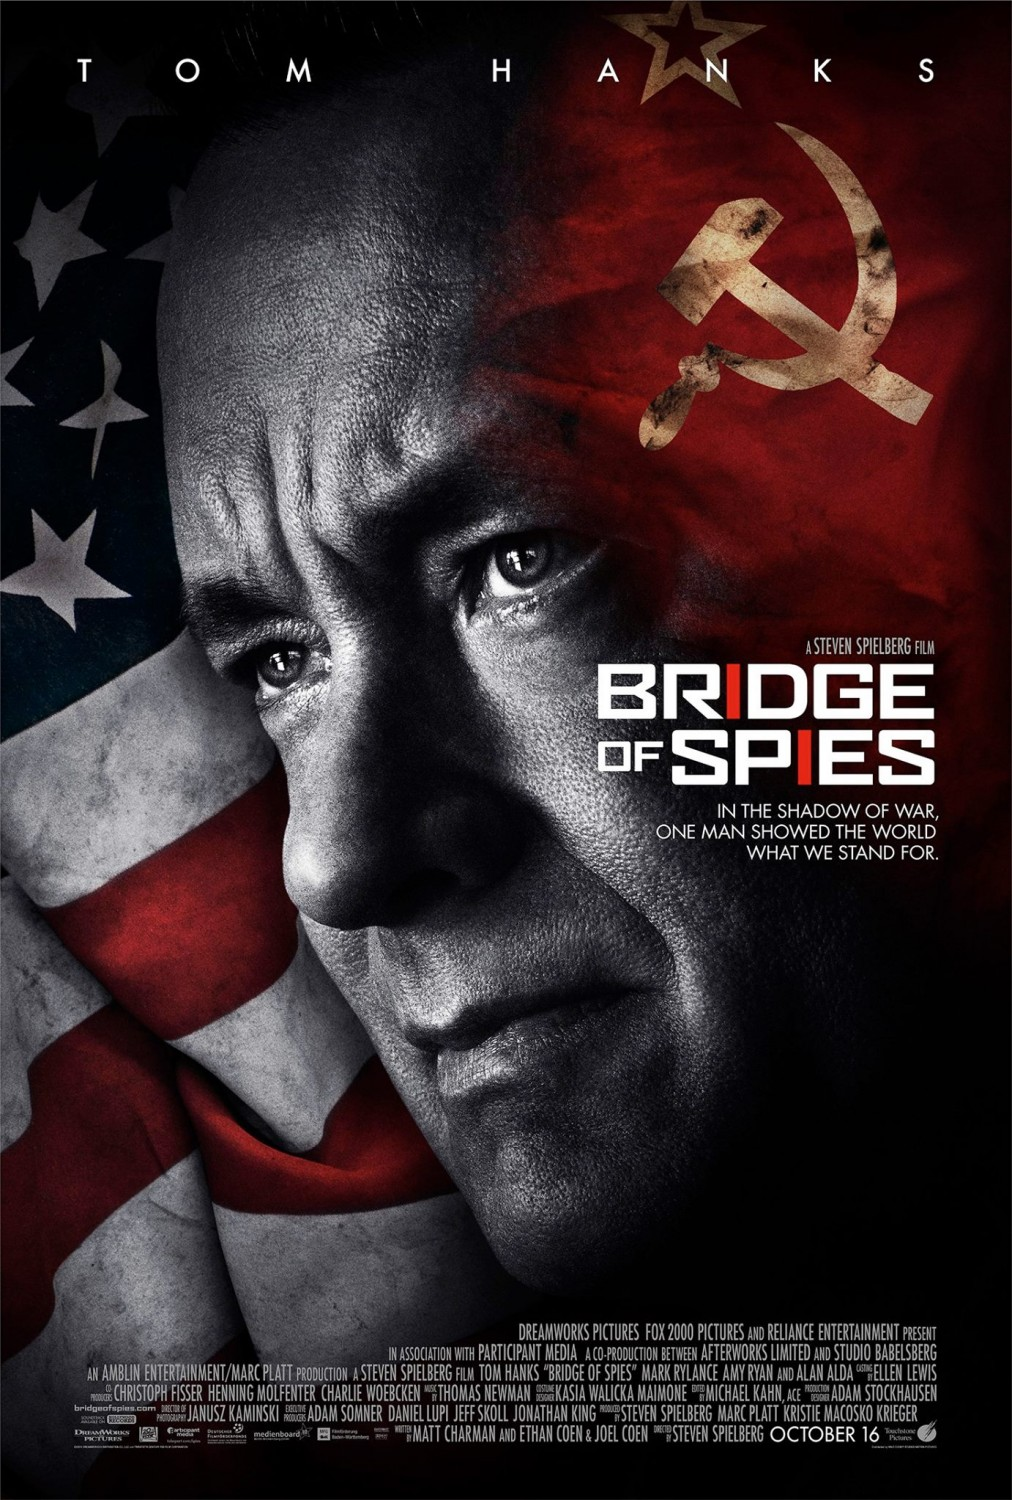 Bridge-of-spies-poster.jpg